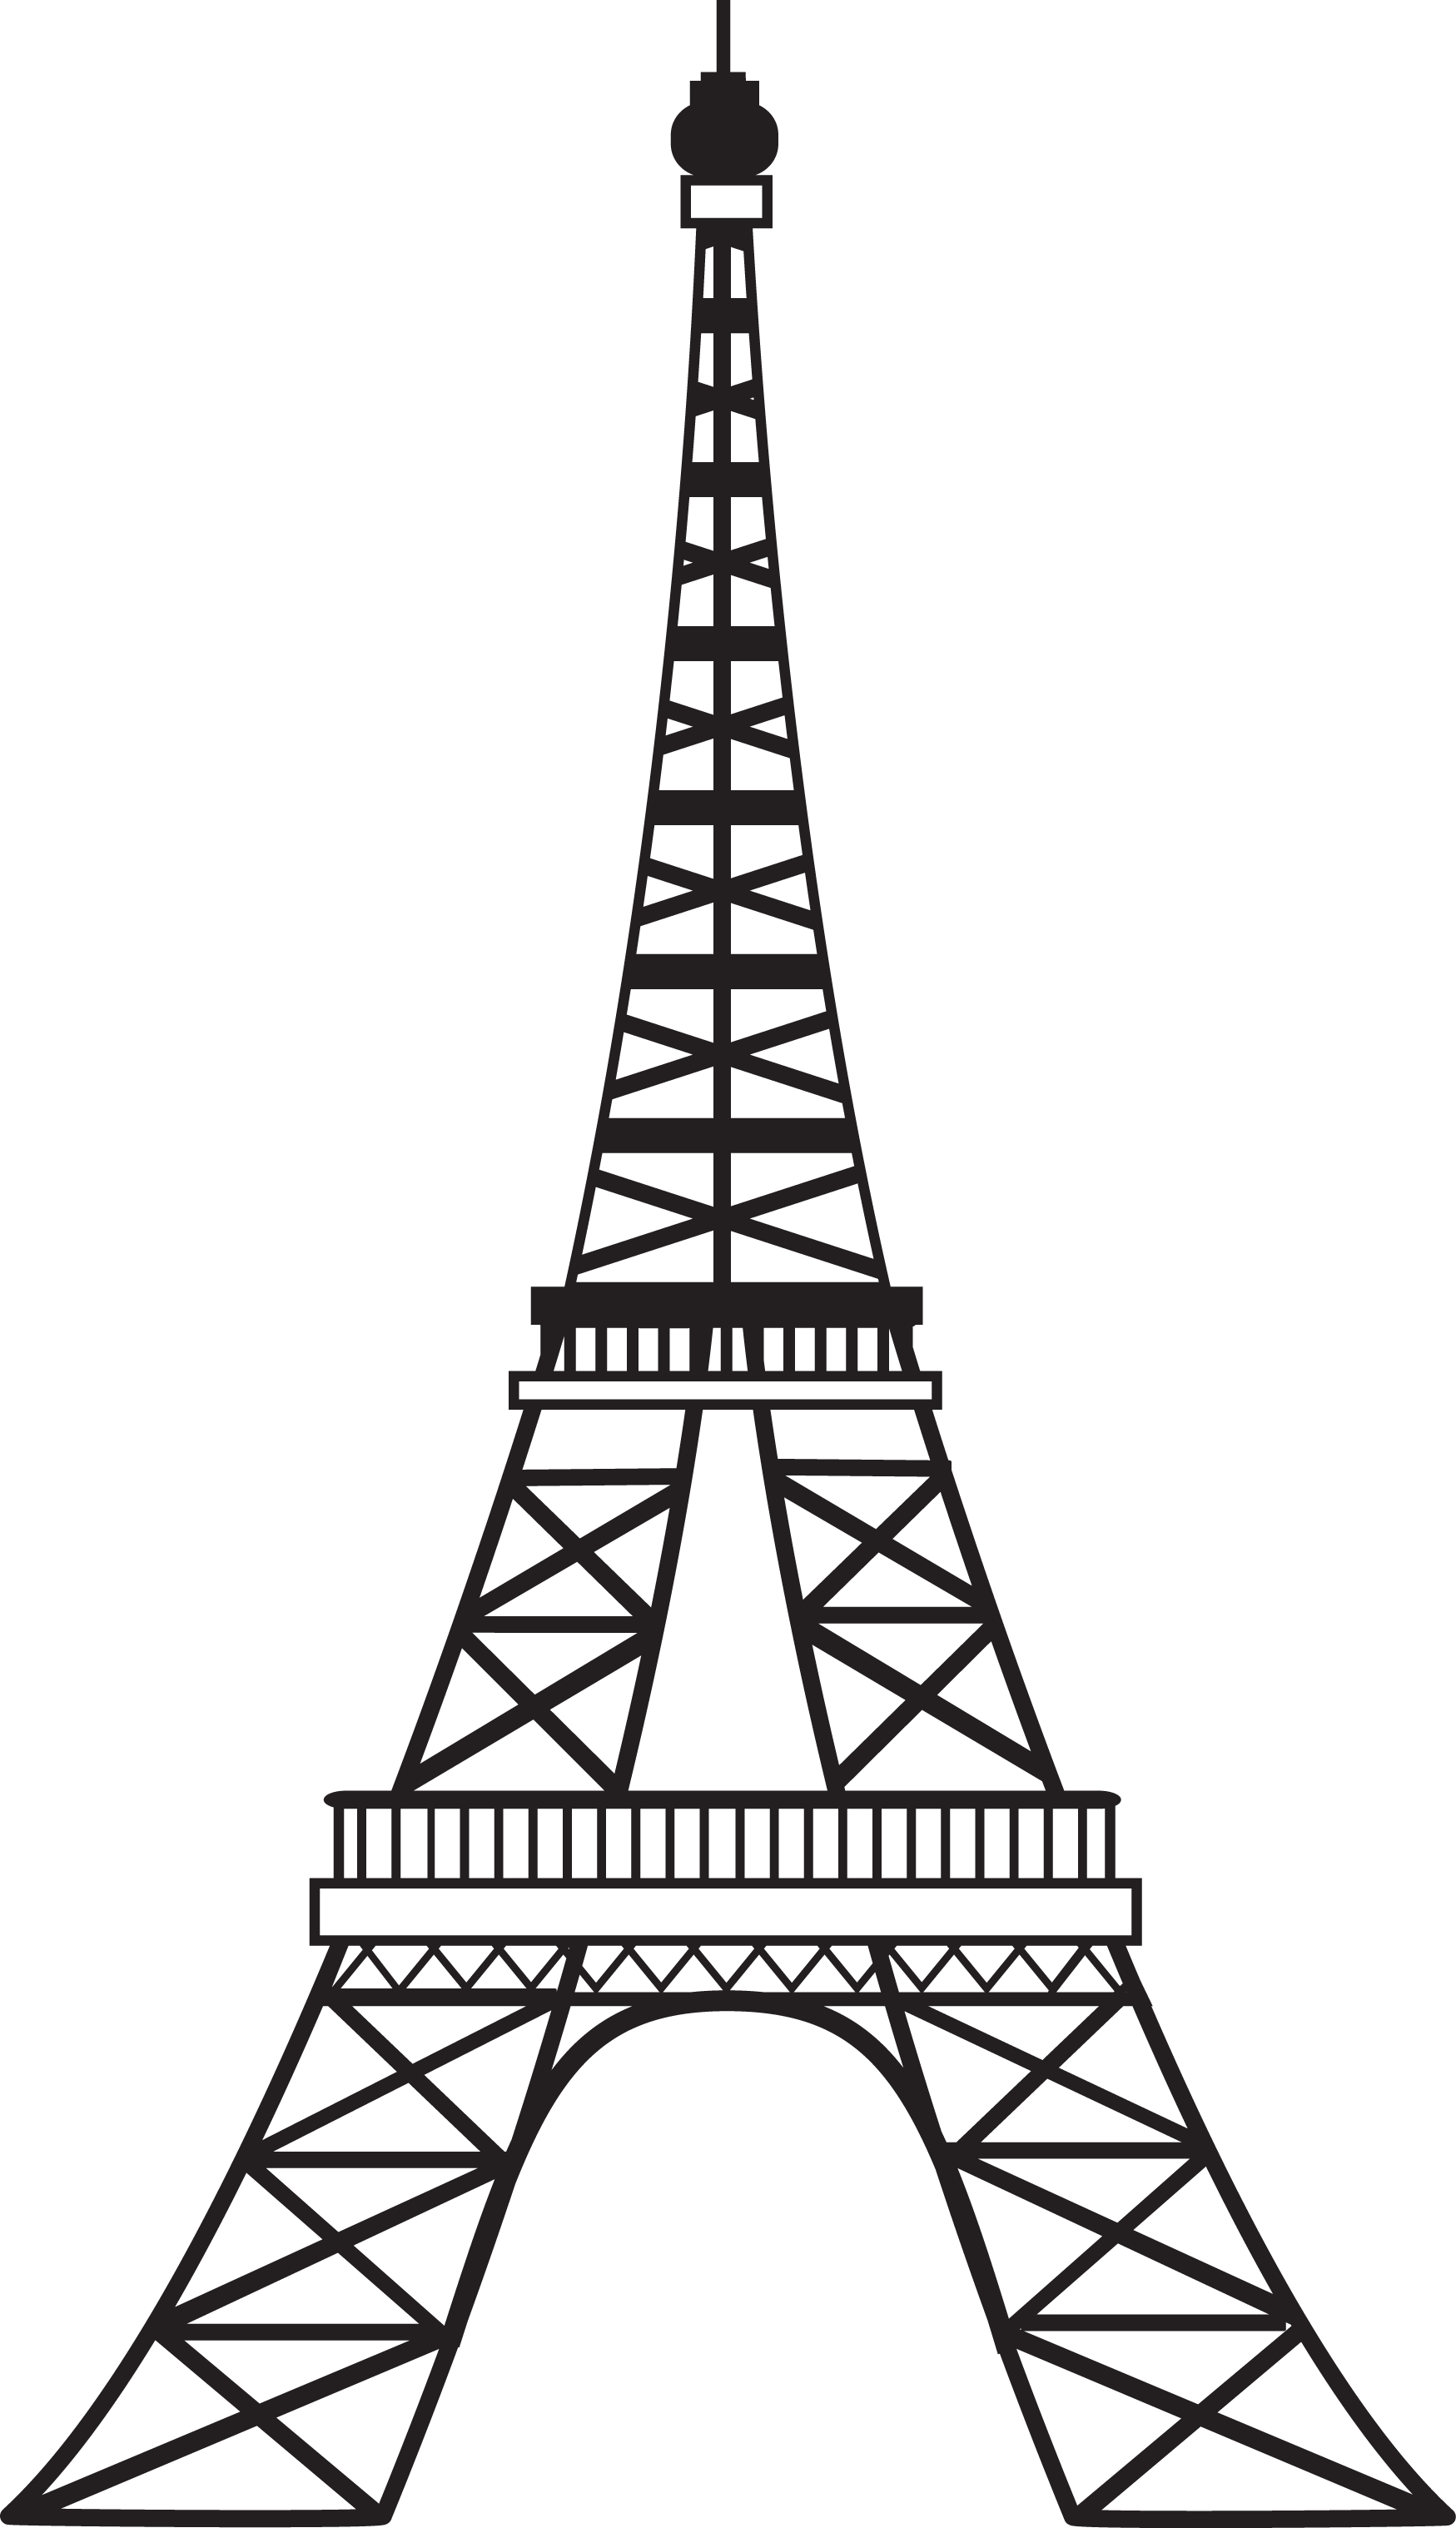 Eiffel Tower Line Drawing.PNG - ClipArt Best